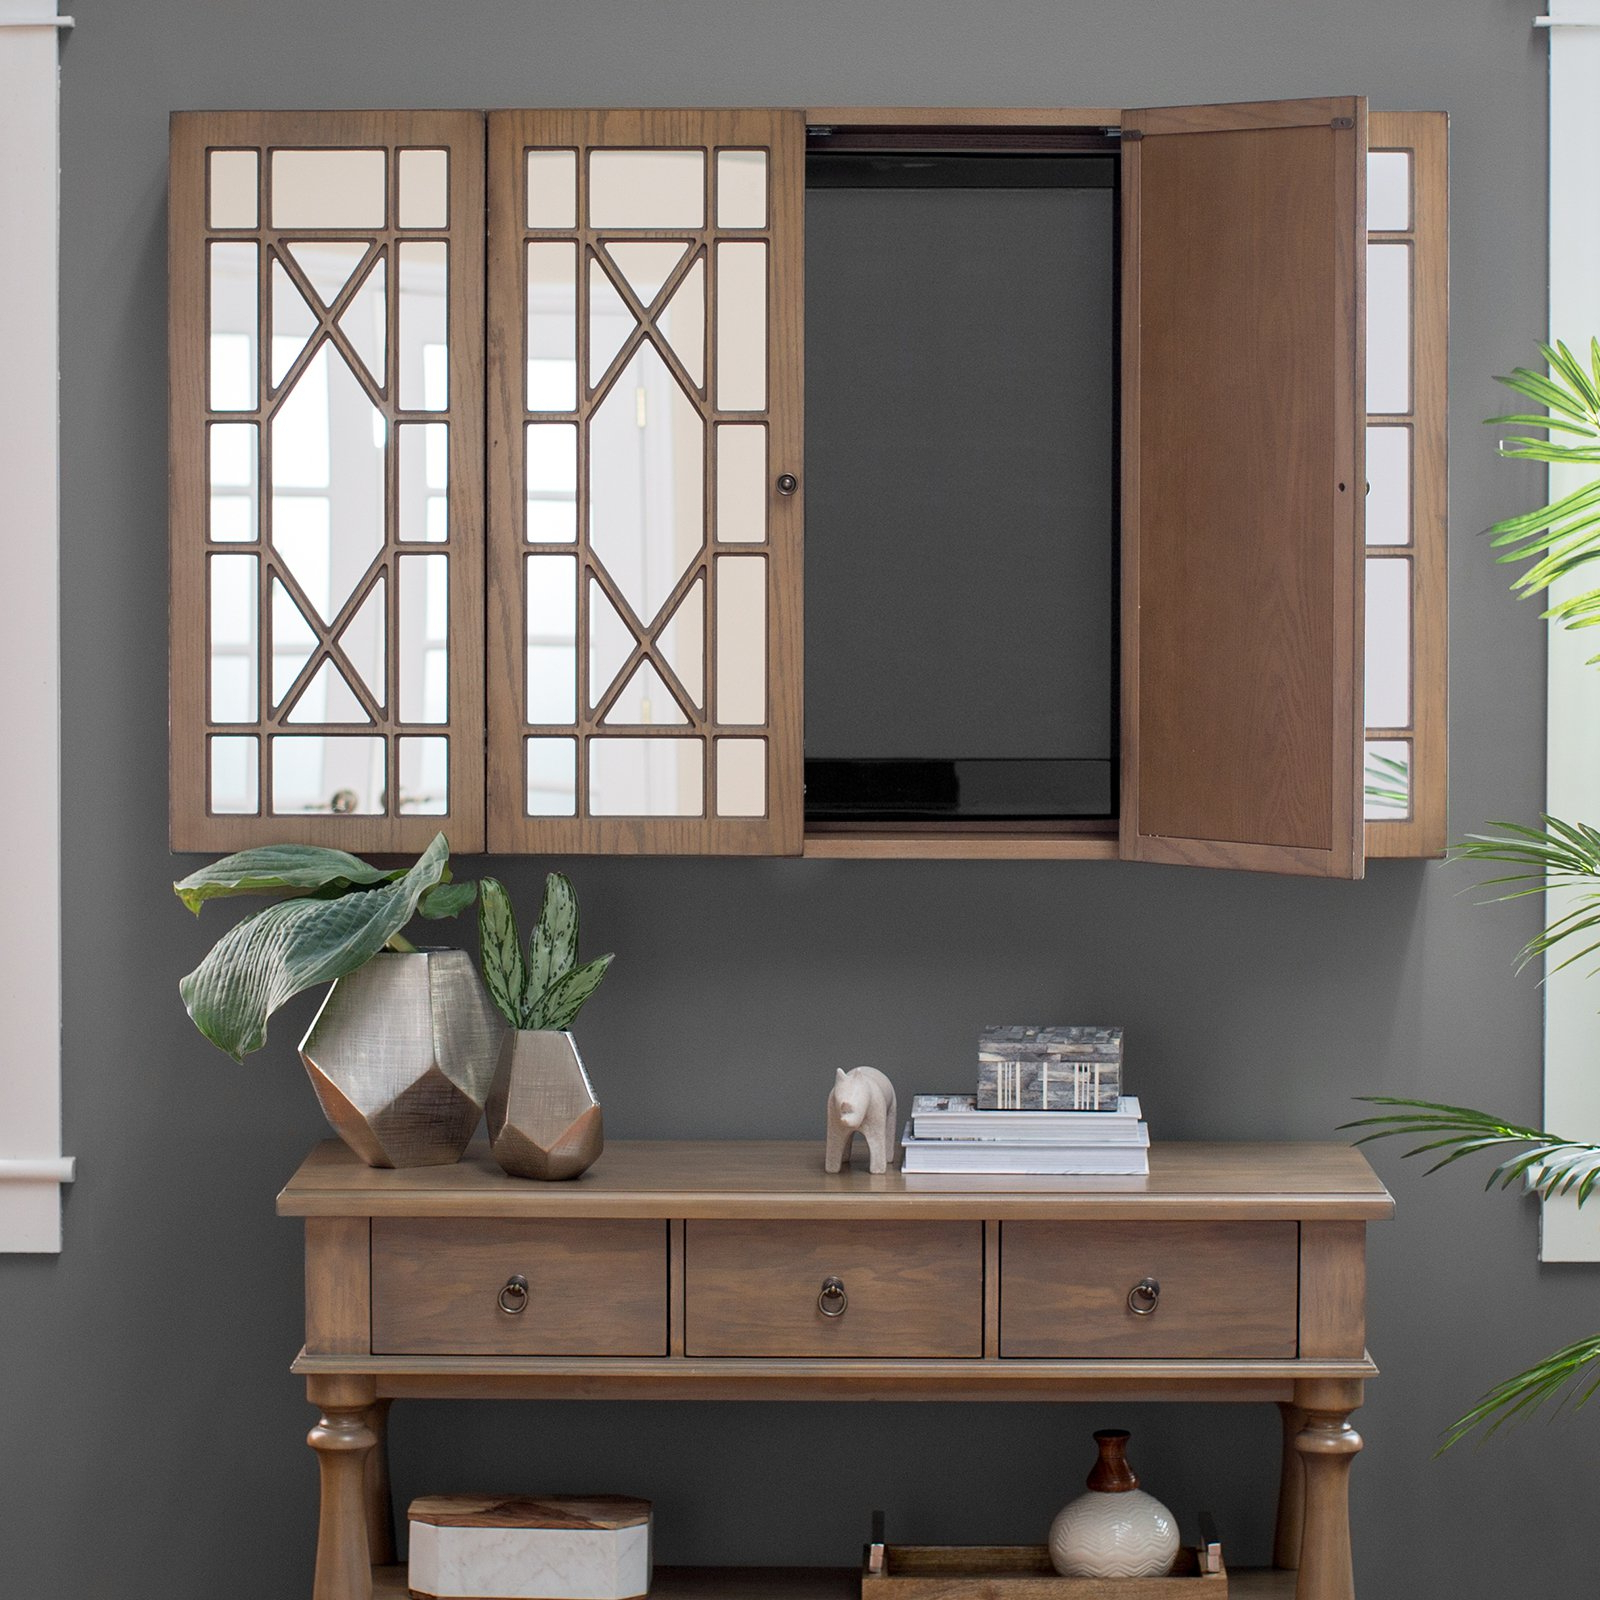 Belham Living Florence Tv Wall Cabinet – Walmart Pertaining To Widely Used Tv Wall Cabinets (View 6 of 20)